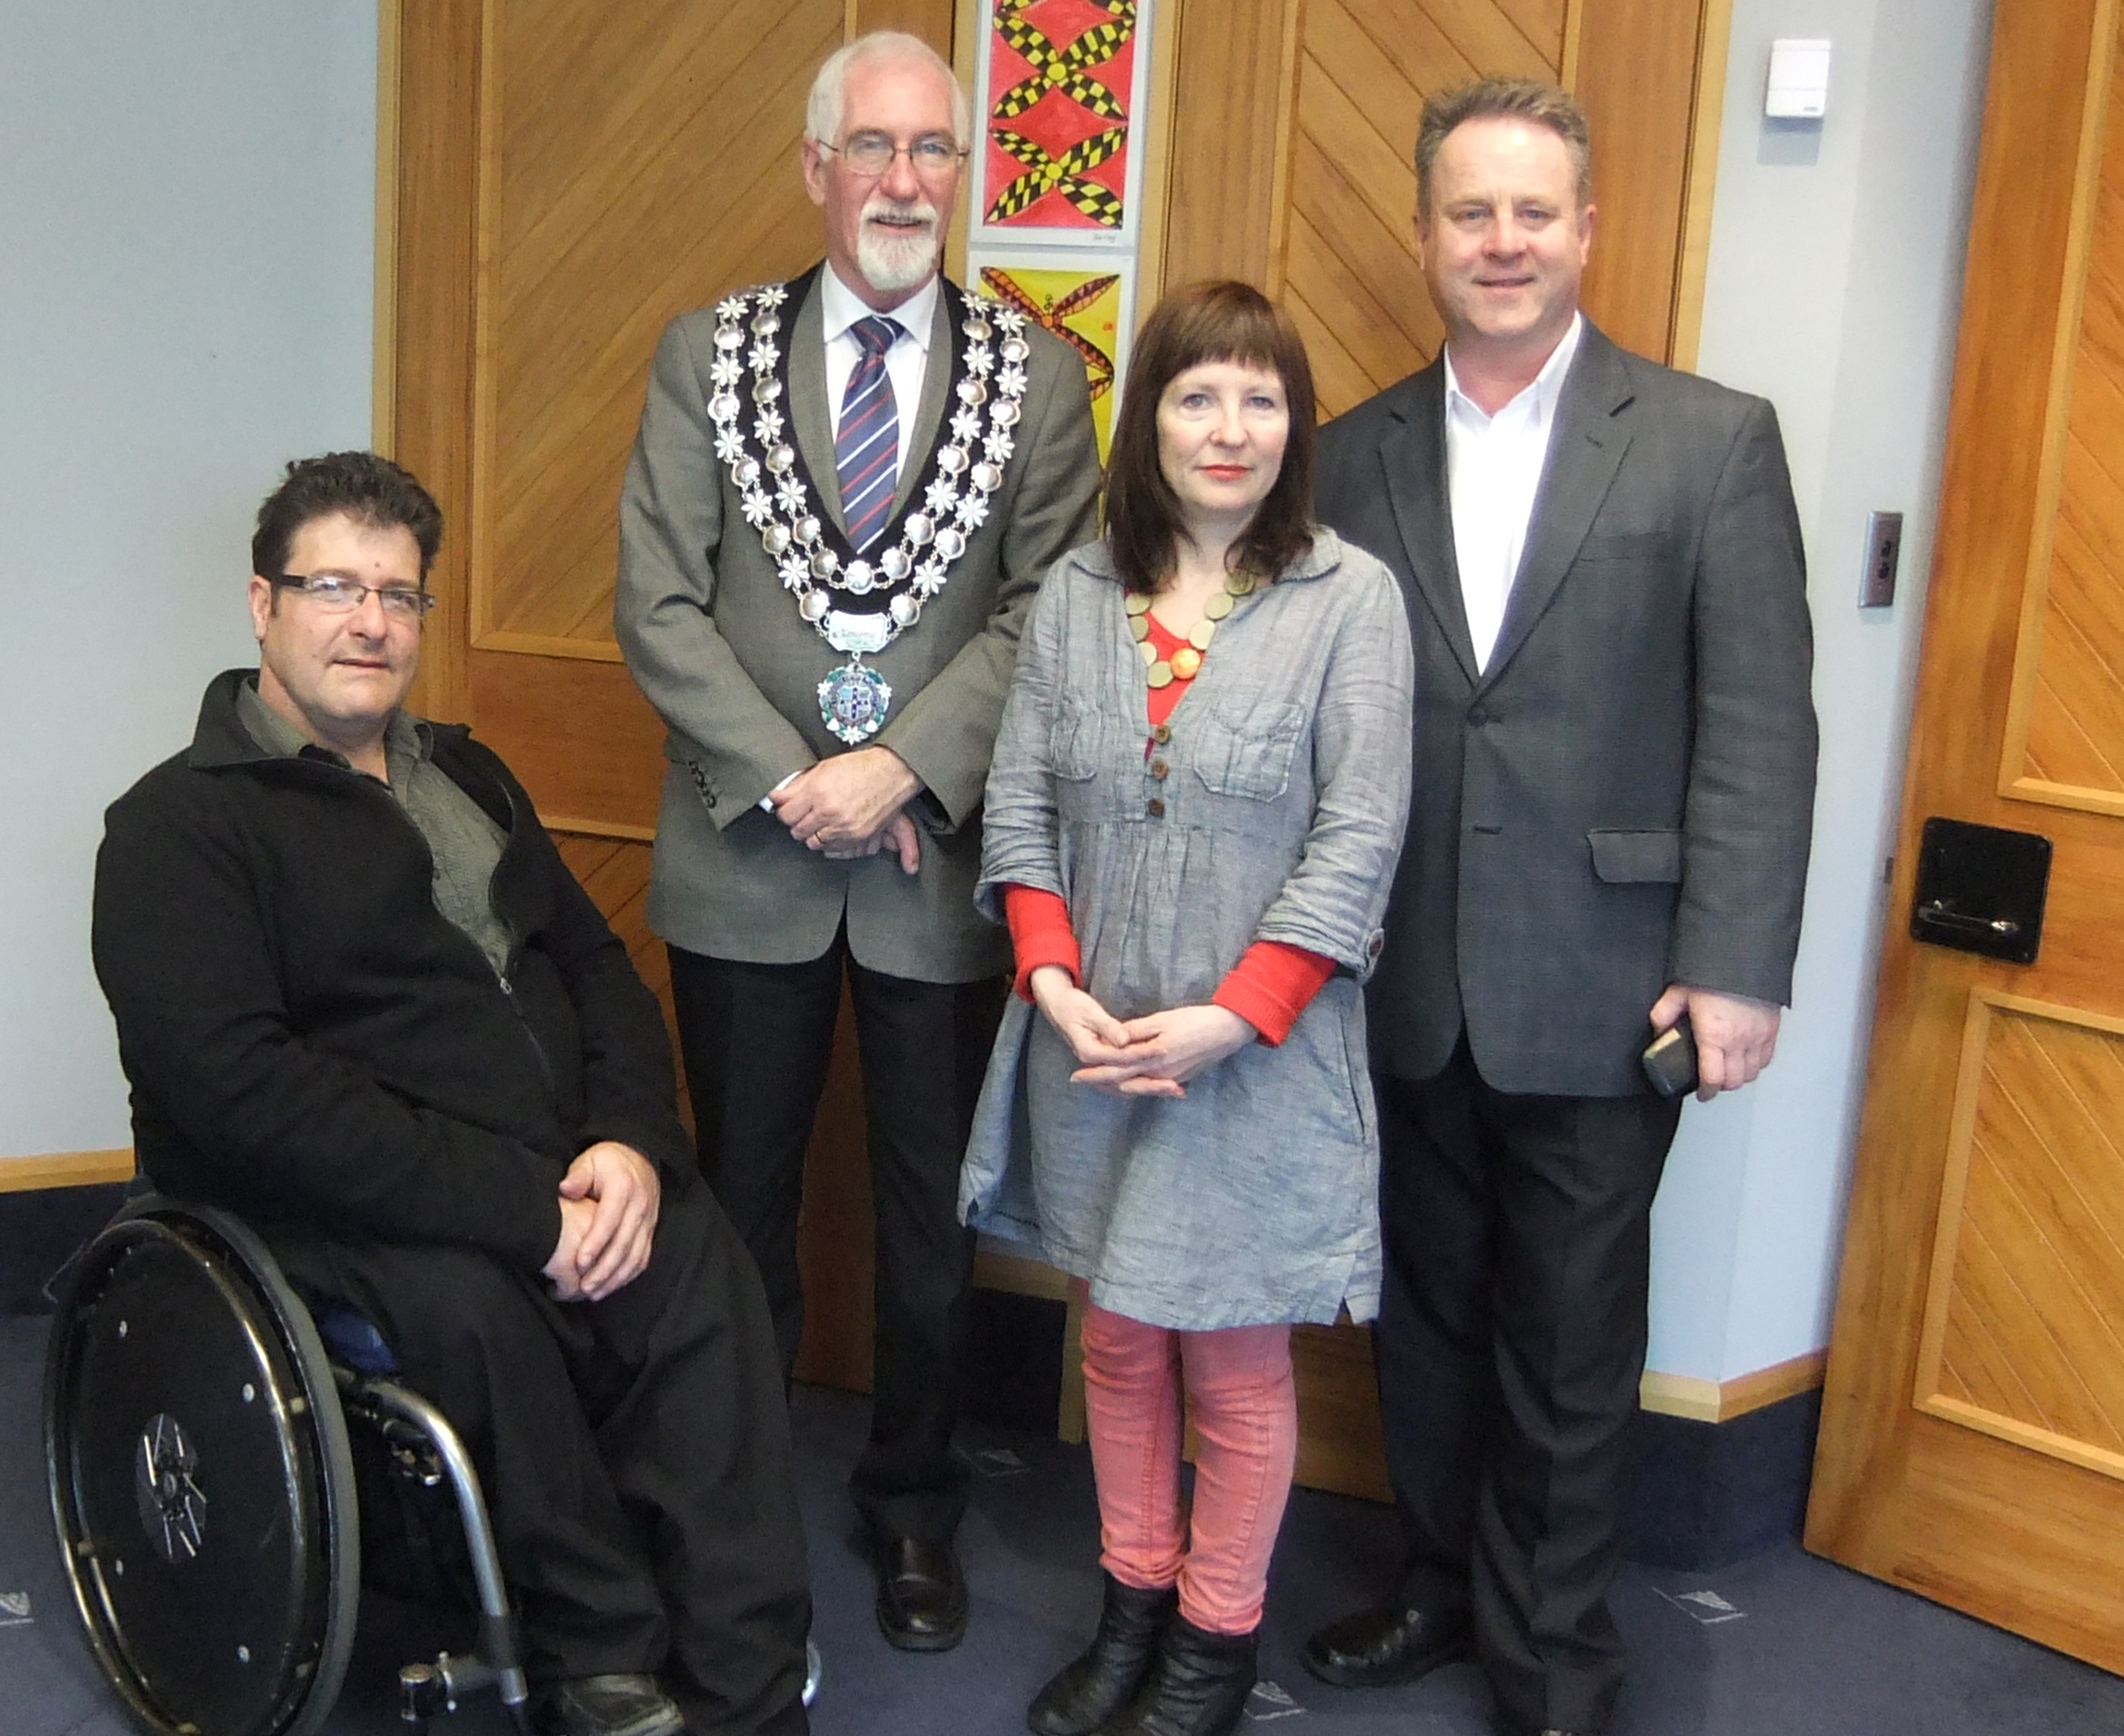 Stew Sexton, Pippa Sanderson and Richard Benge of Arts Access Aotearoa with New Plymouth Mayor Harry Duynhoven